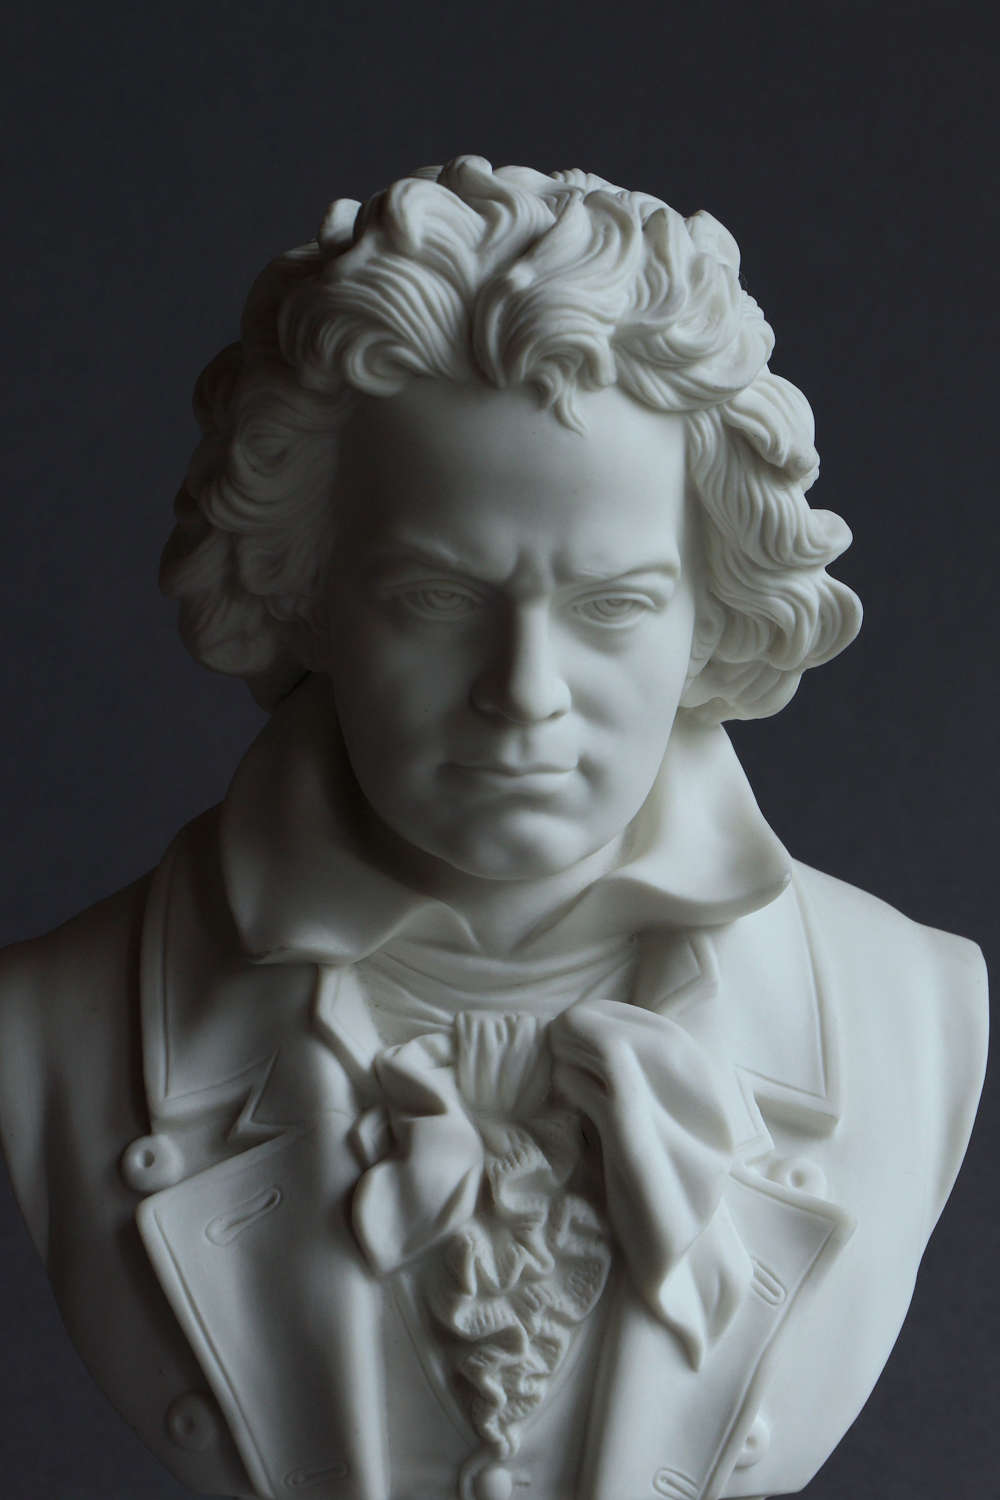 A medium Parian bust of Beethoven by Robinson & Leadbeater